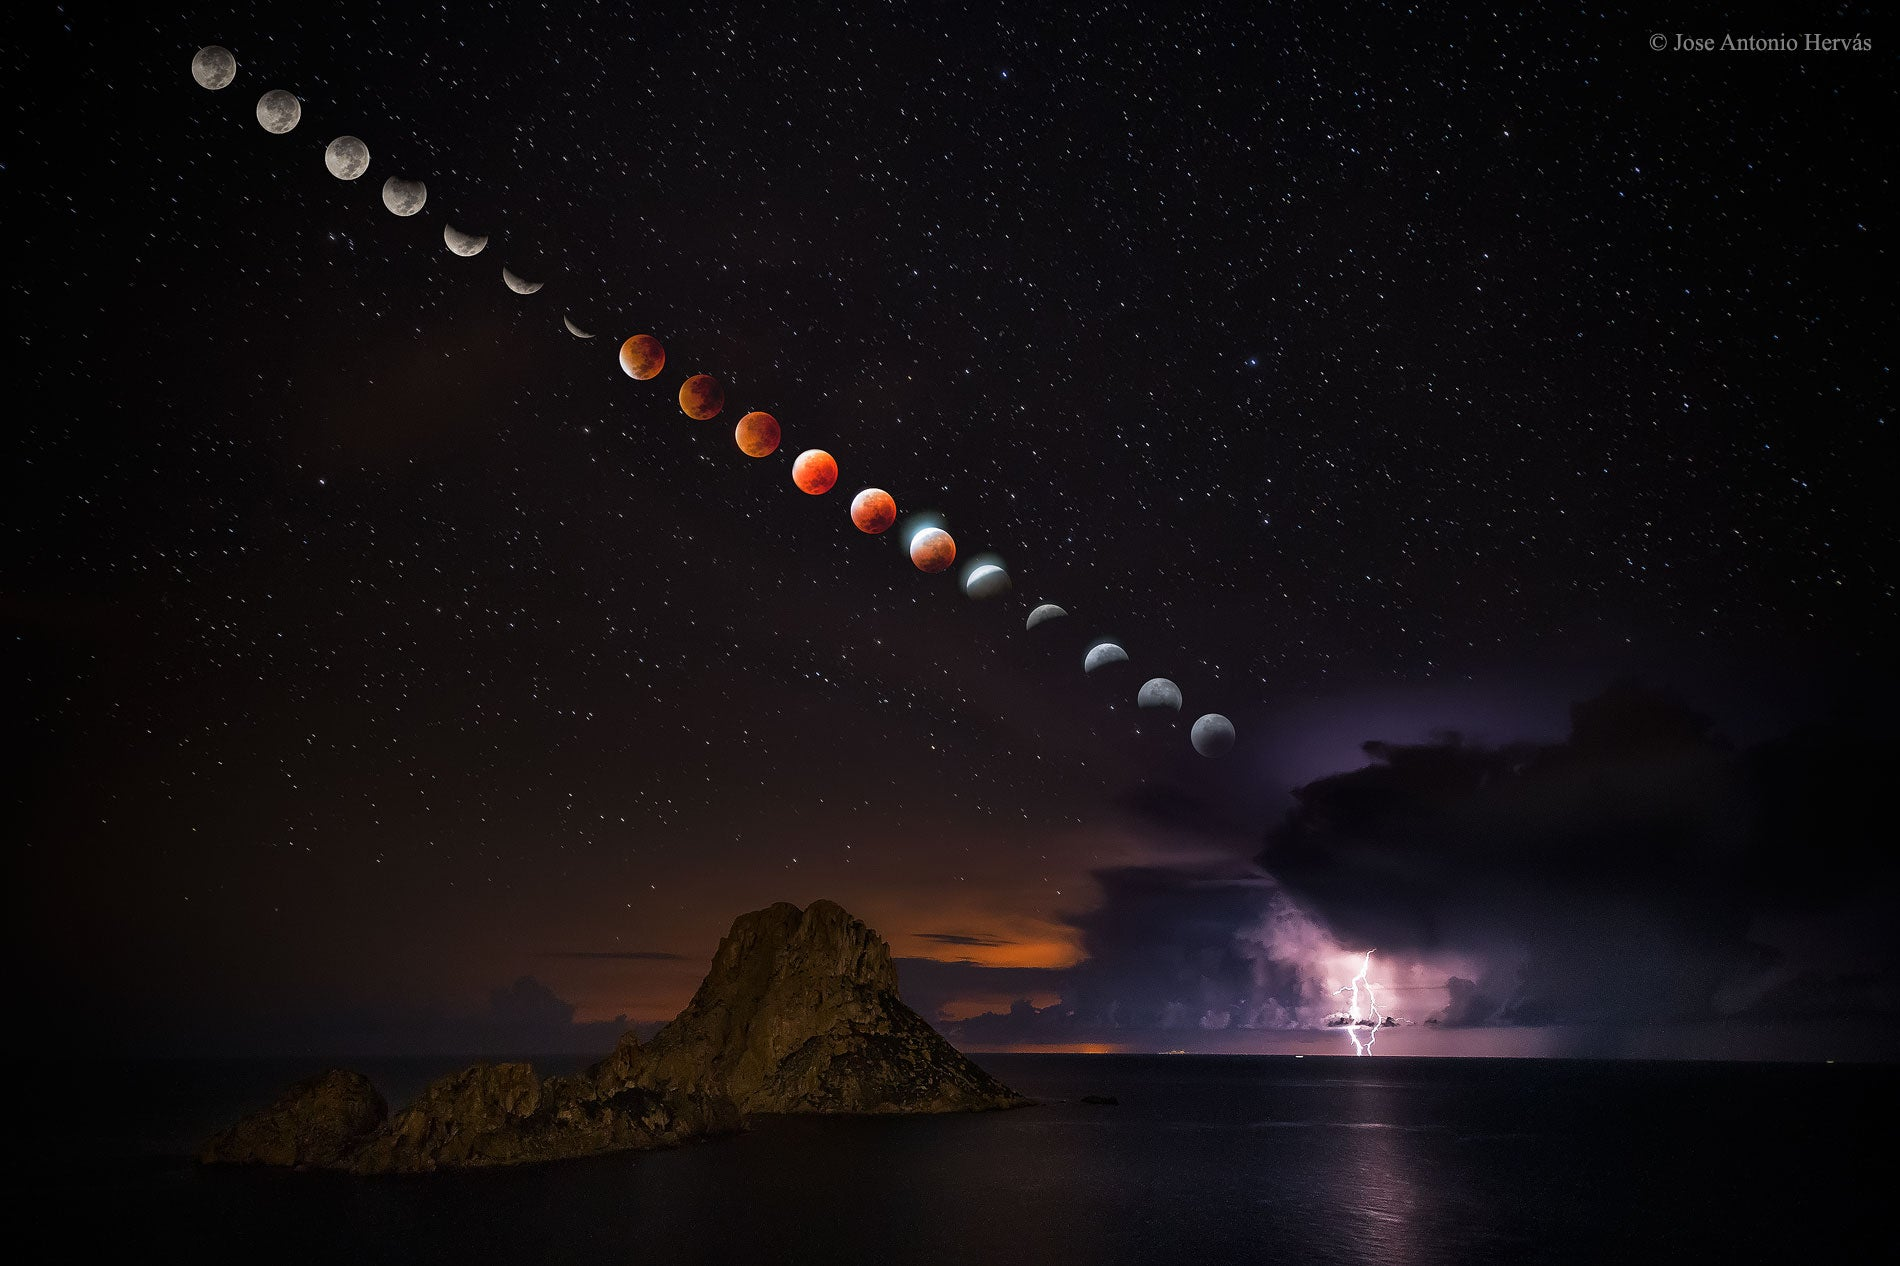 Super Blood Moon, A Glowing Turtle, And Other Amazing Images Of The Week